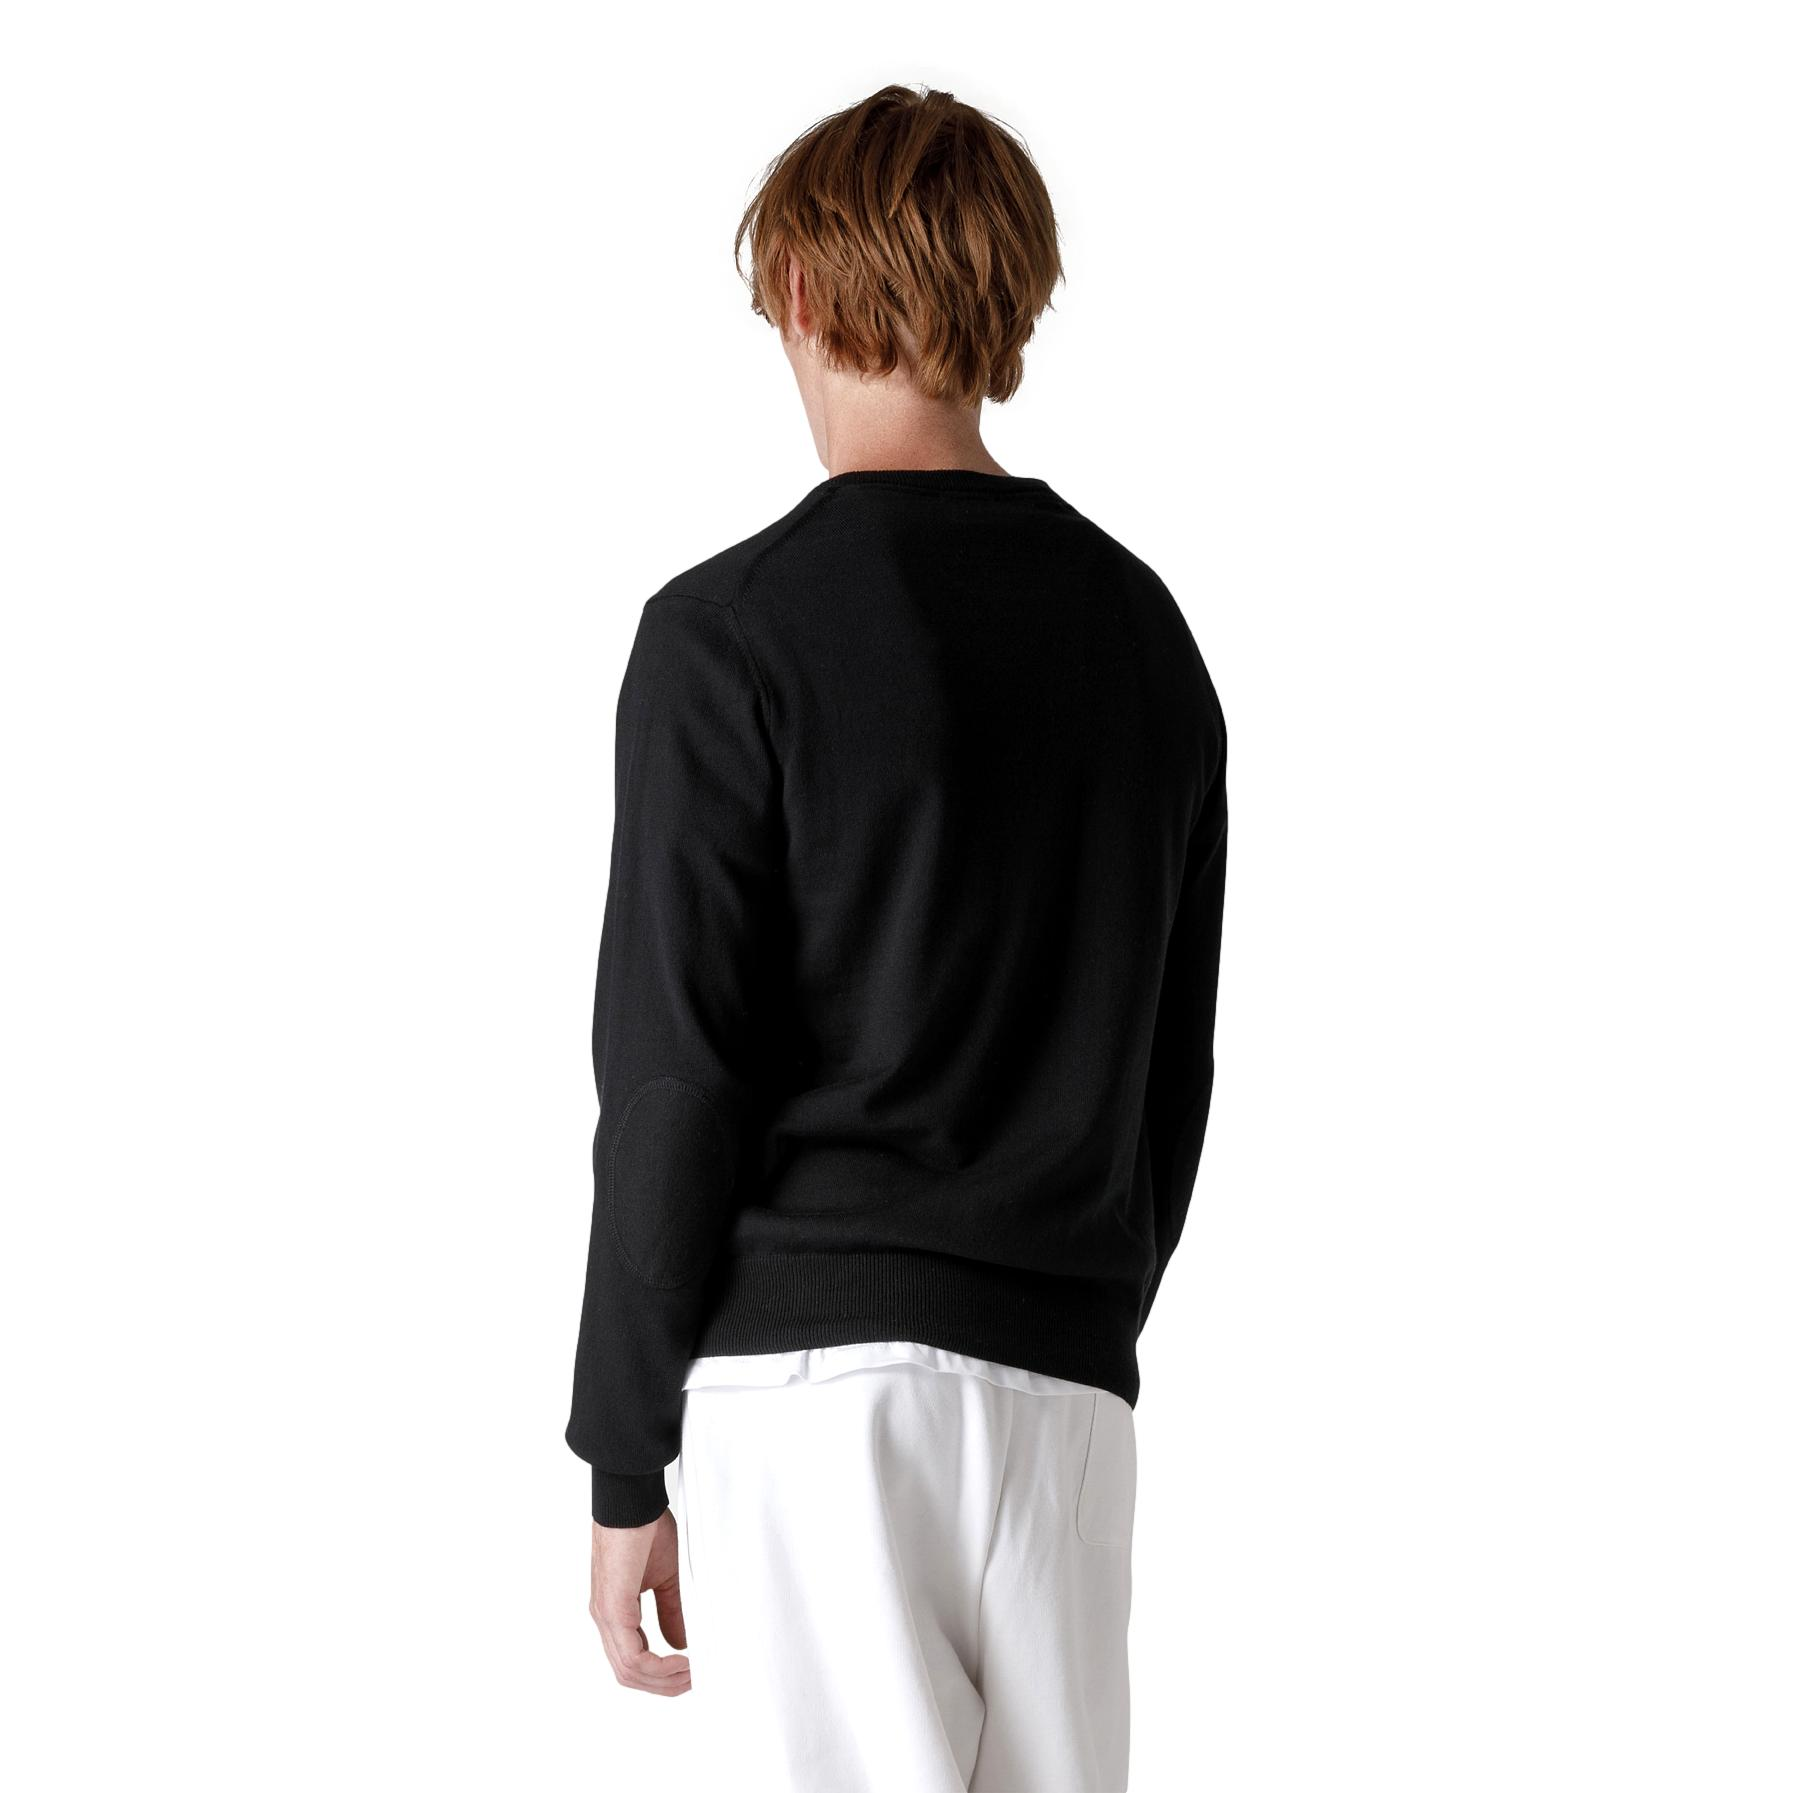 COTTON AND WOOL TRICOT SWEATEREXMOOR 04 PEUTEREY |  | PEU3638 99011919NERO